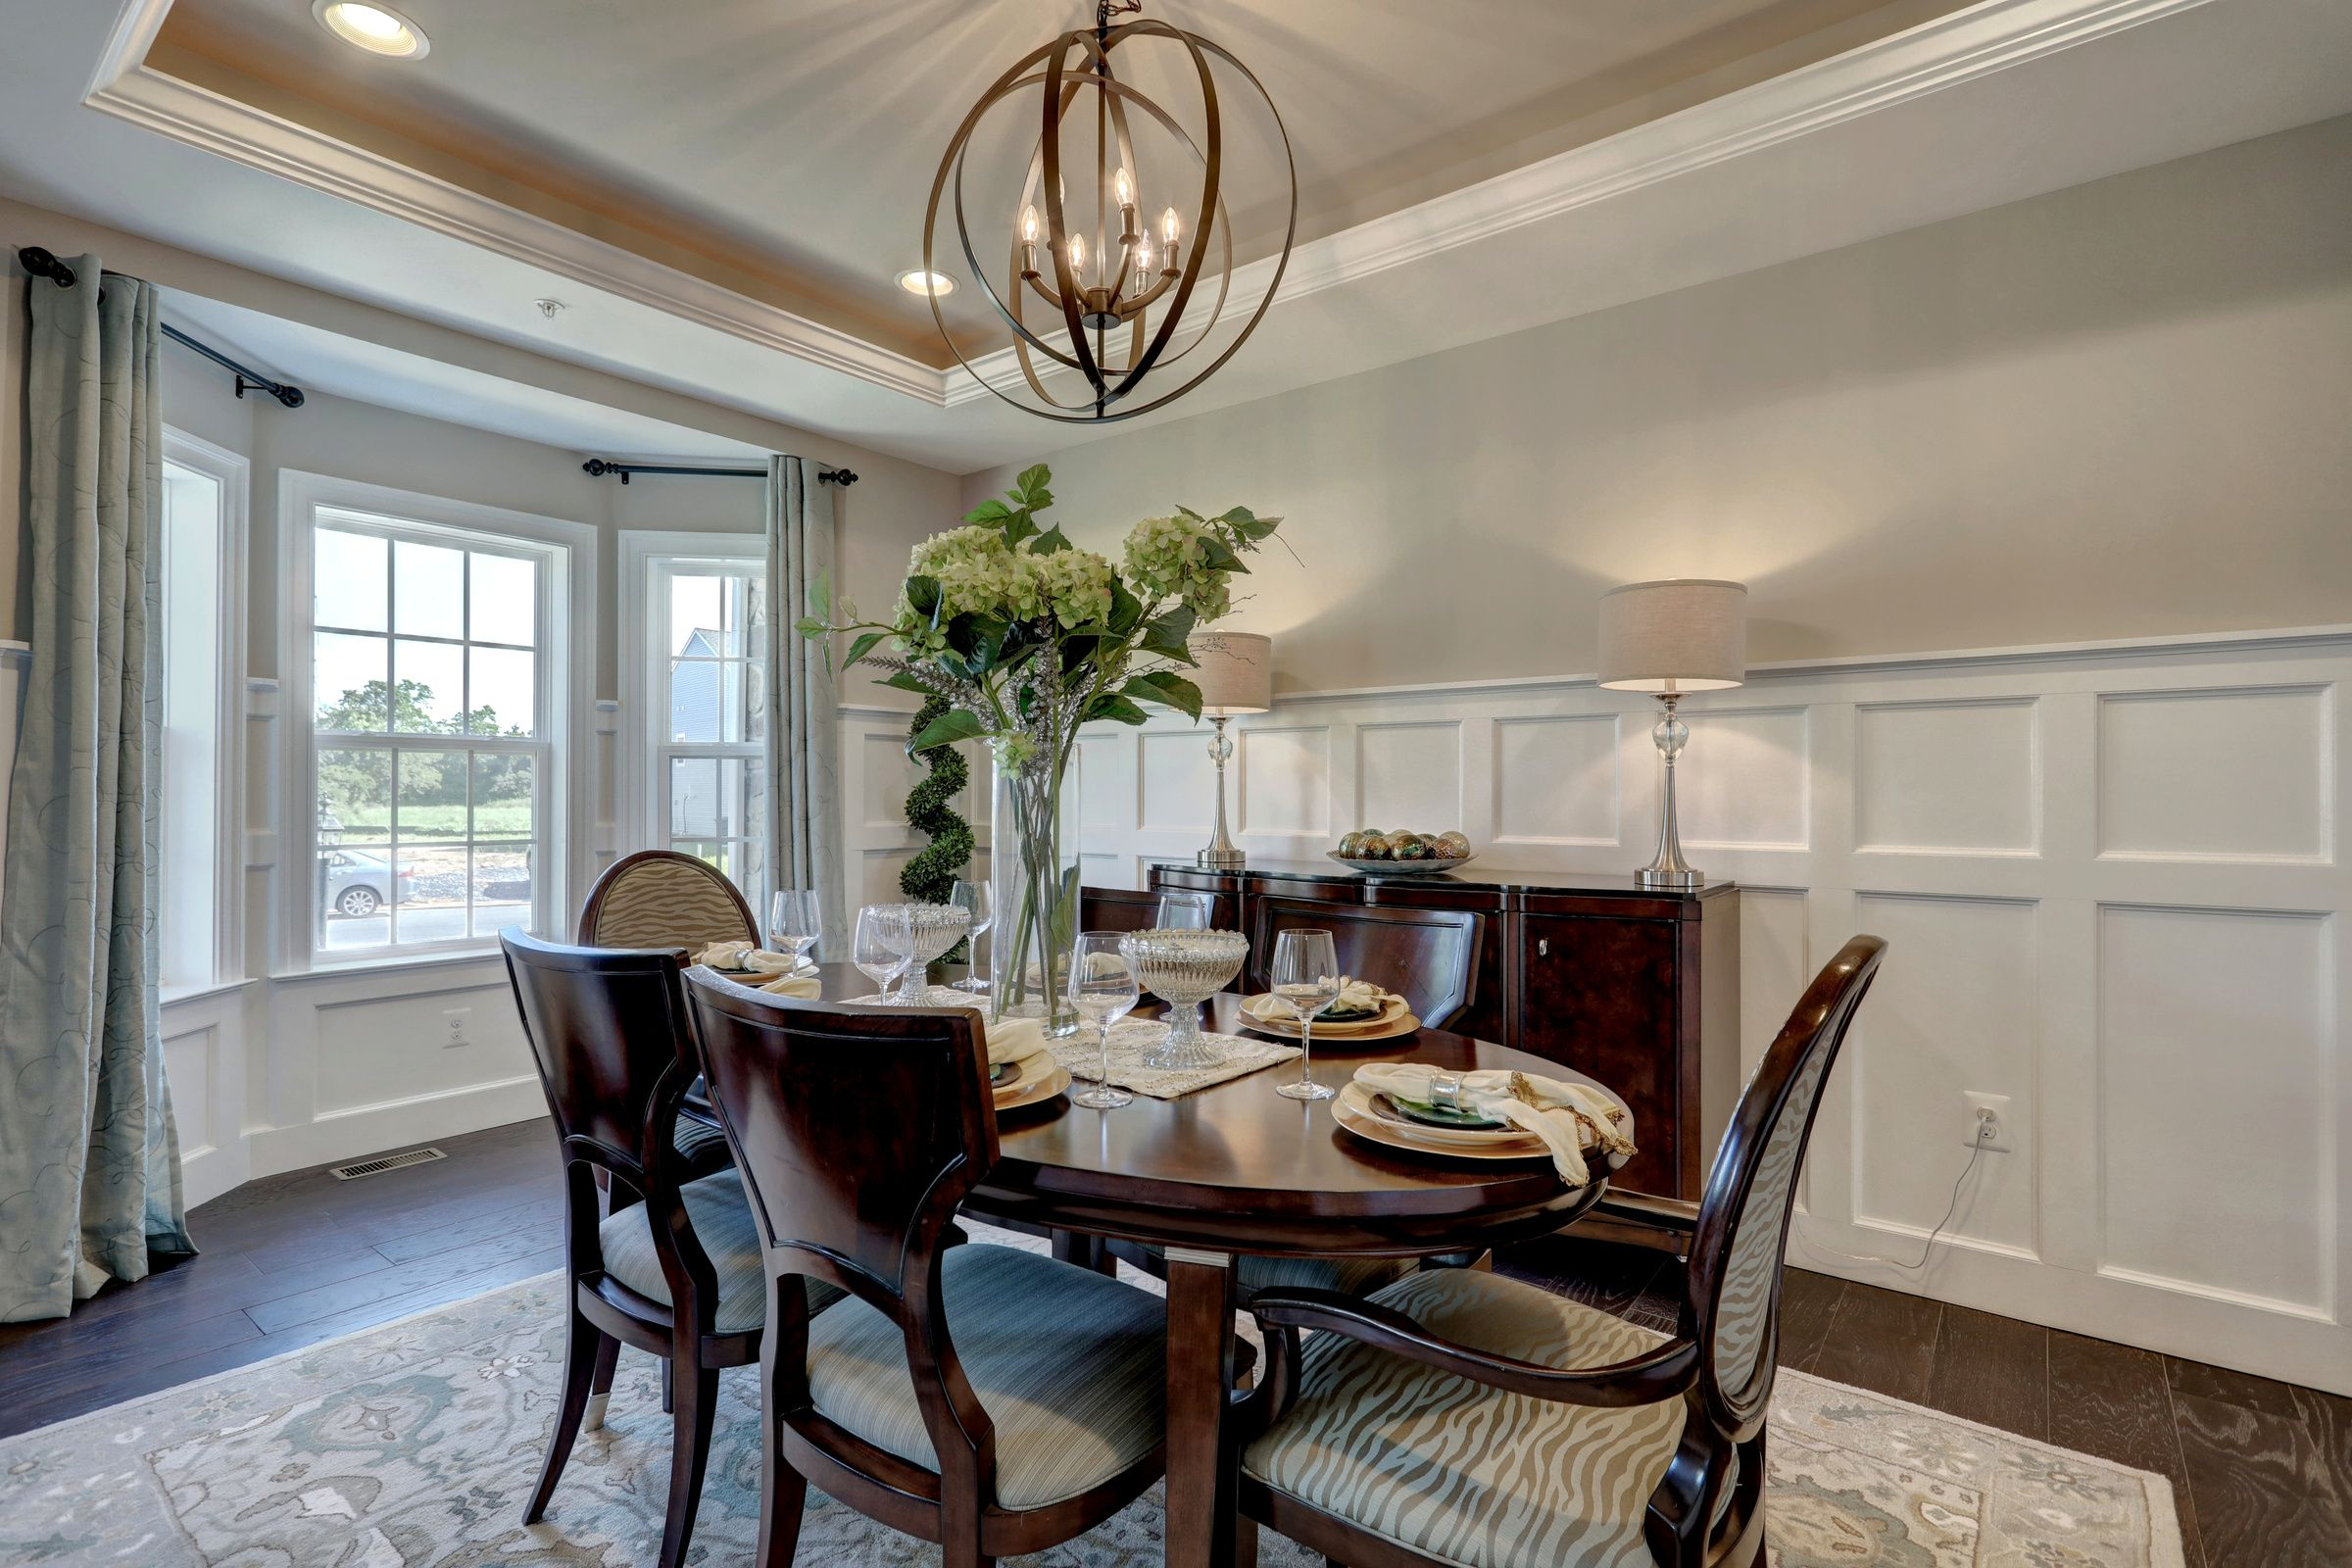 Living Area featured in the Ethan Bordeaux By Keystone Custom Homes in Lancaster, PA